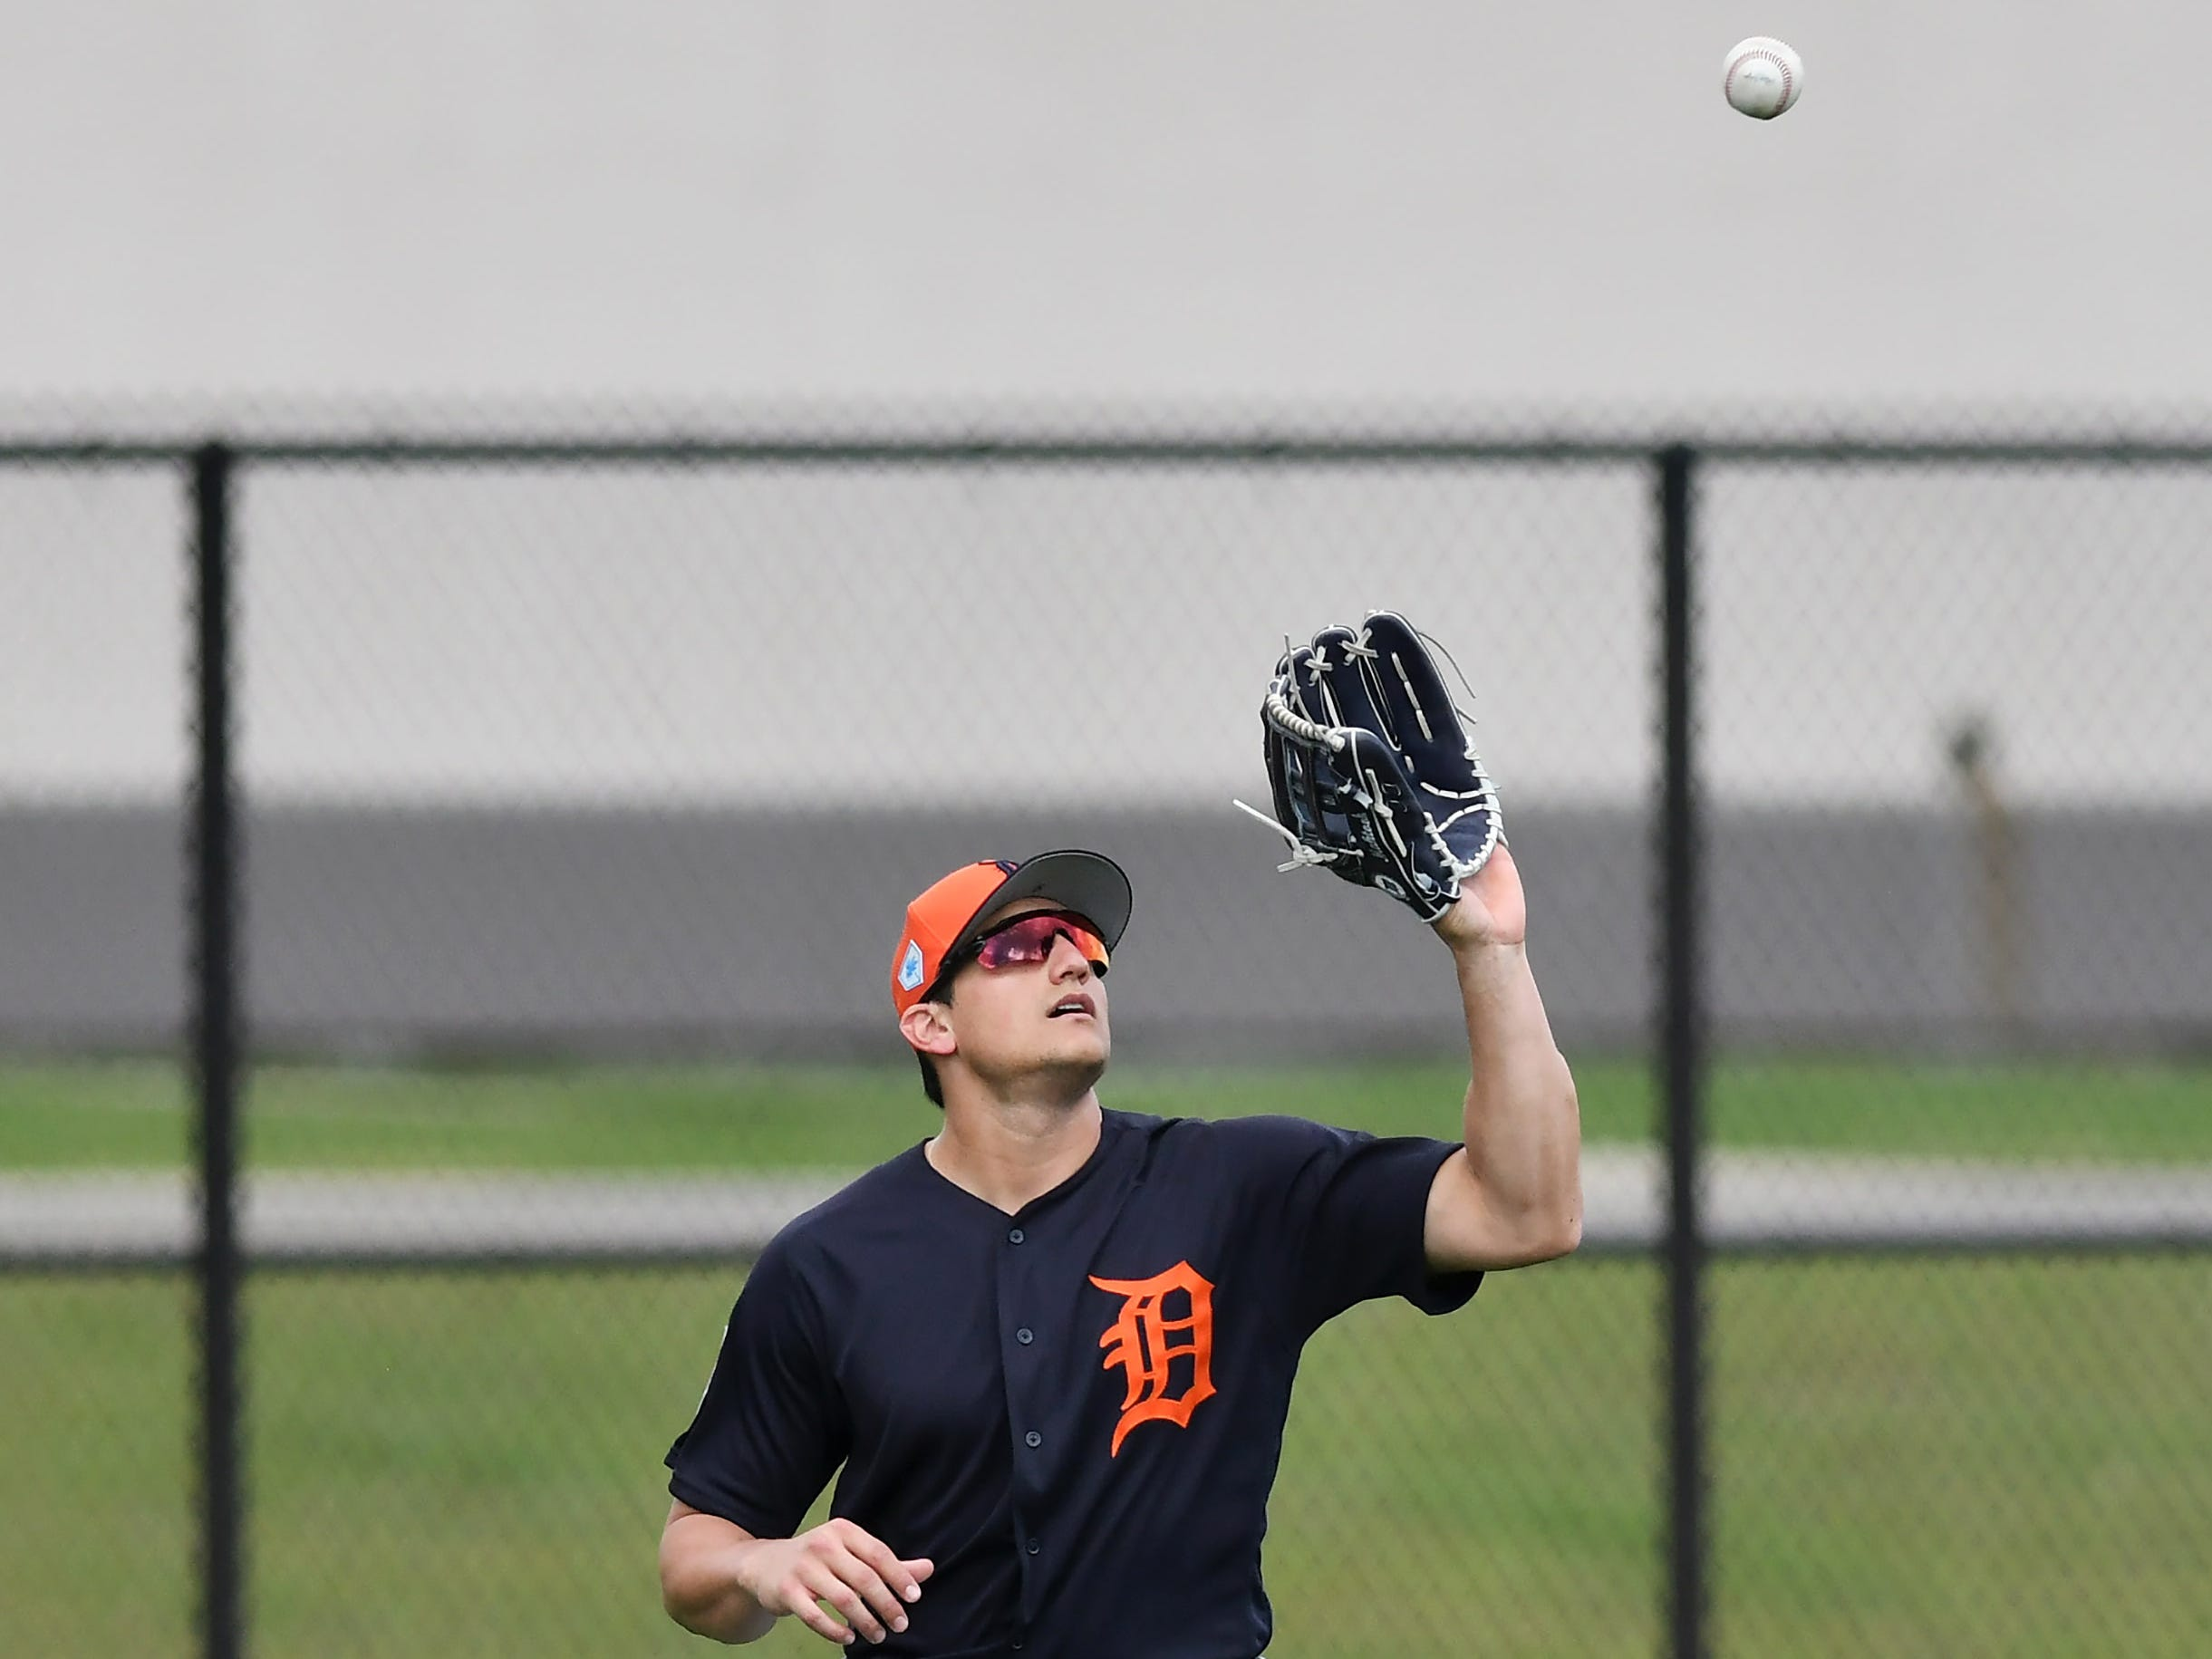 Tigers outfielder Mikie Mahtook makes a catch.